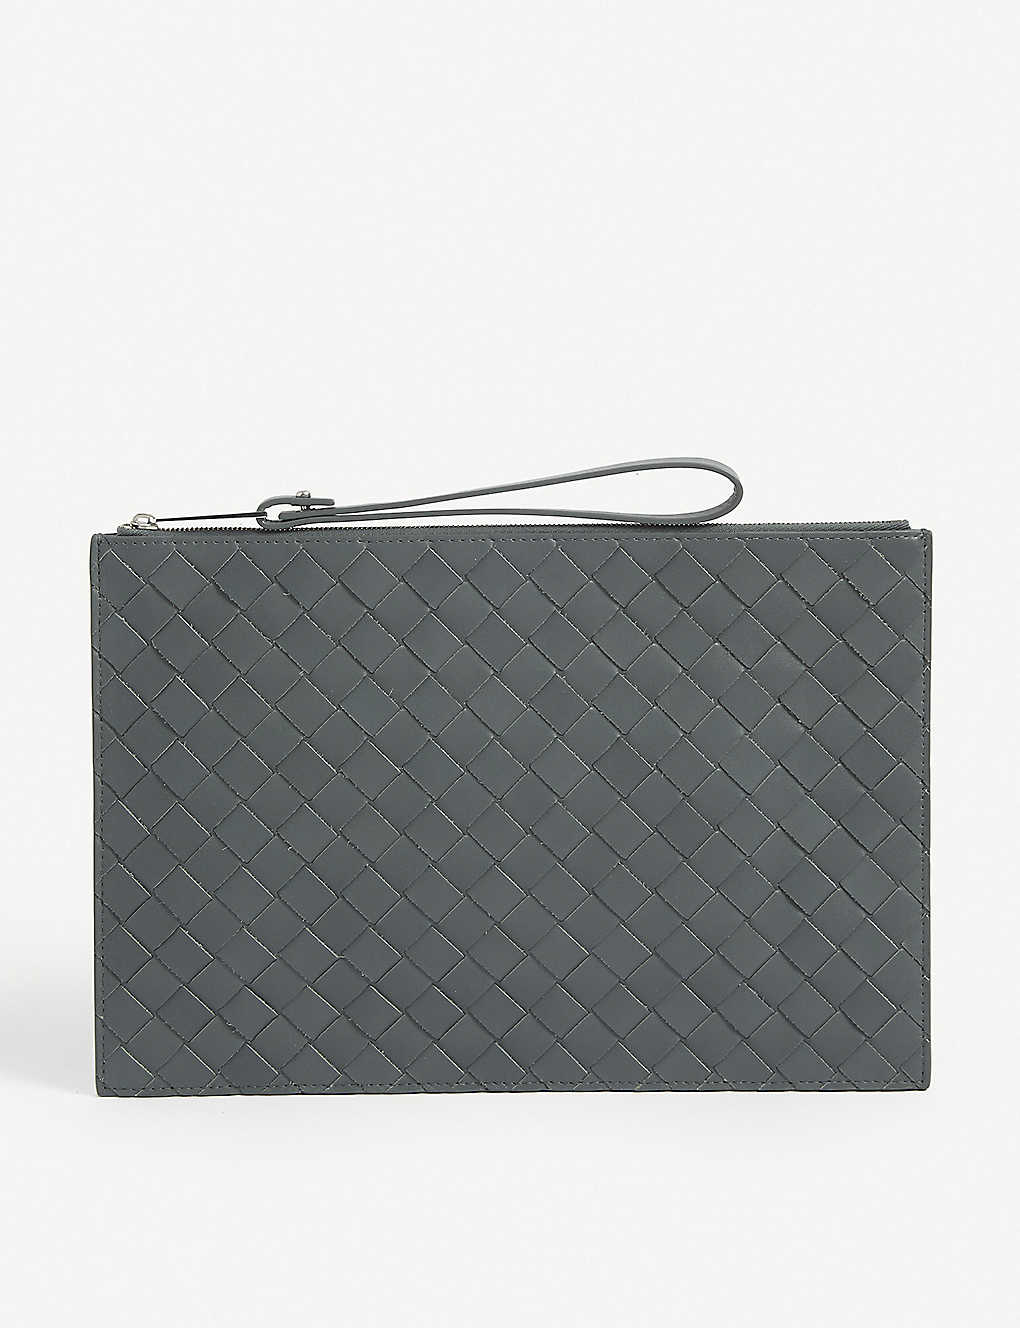 BOTTEGA VENETA: Intrecciato leather pouch